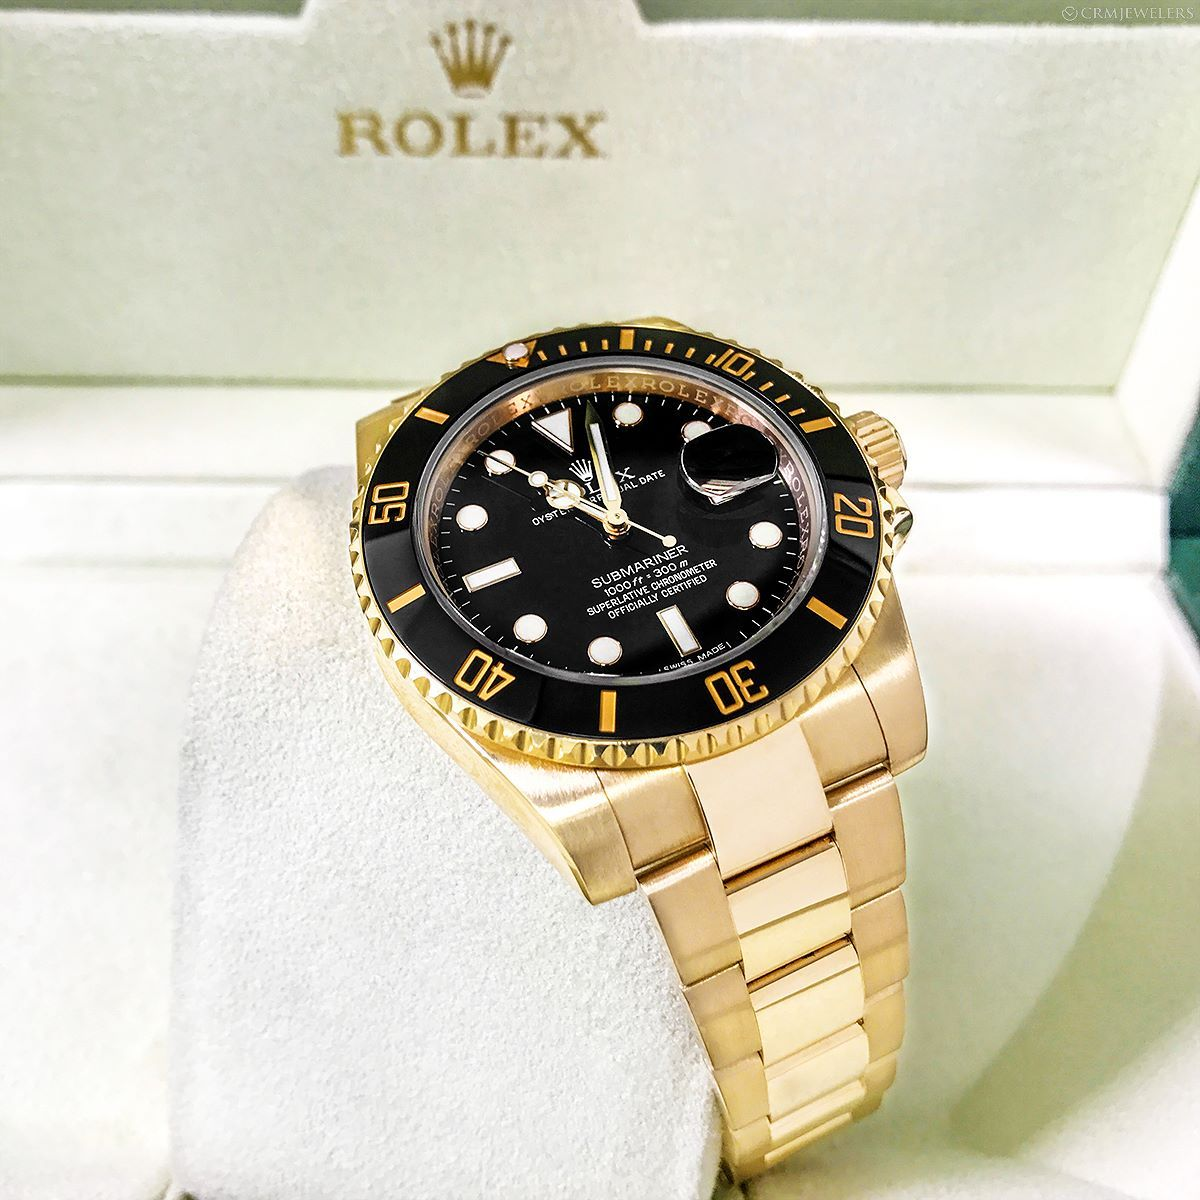 Rolex submariner yellow gold black faced dm now